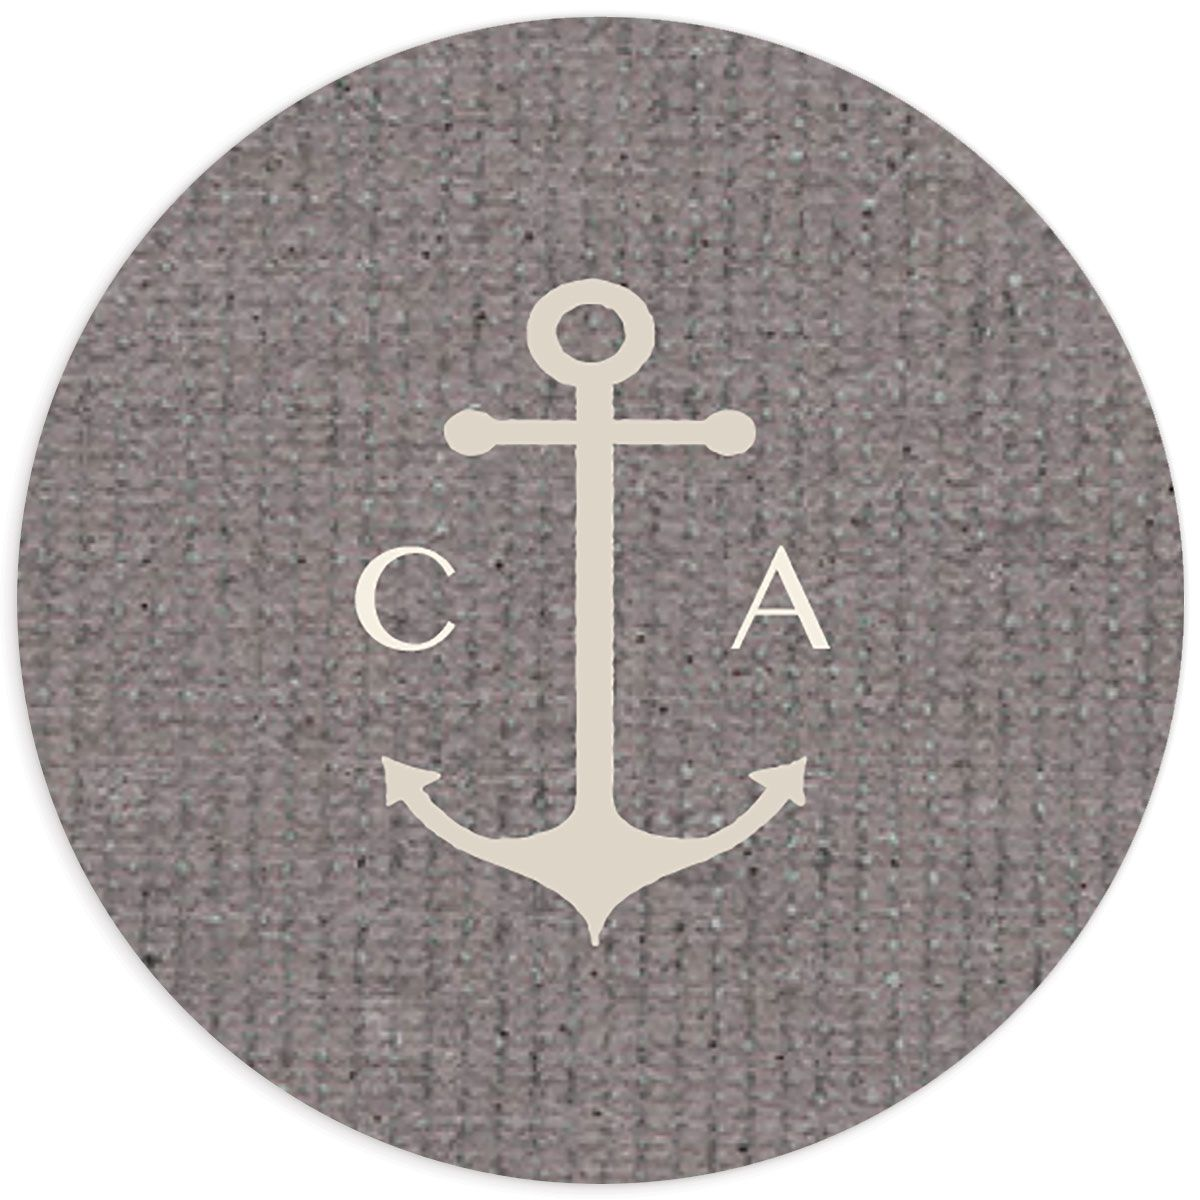 Coastal Love stickers in grey